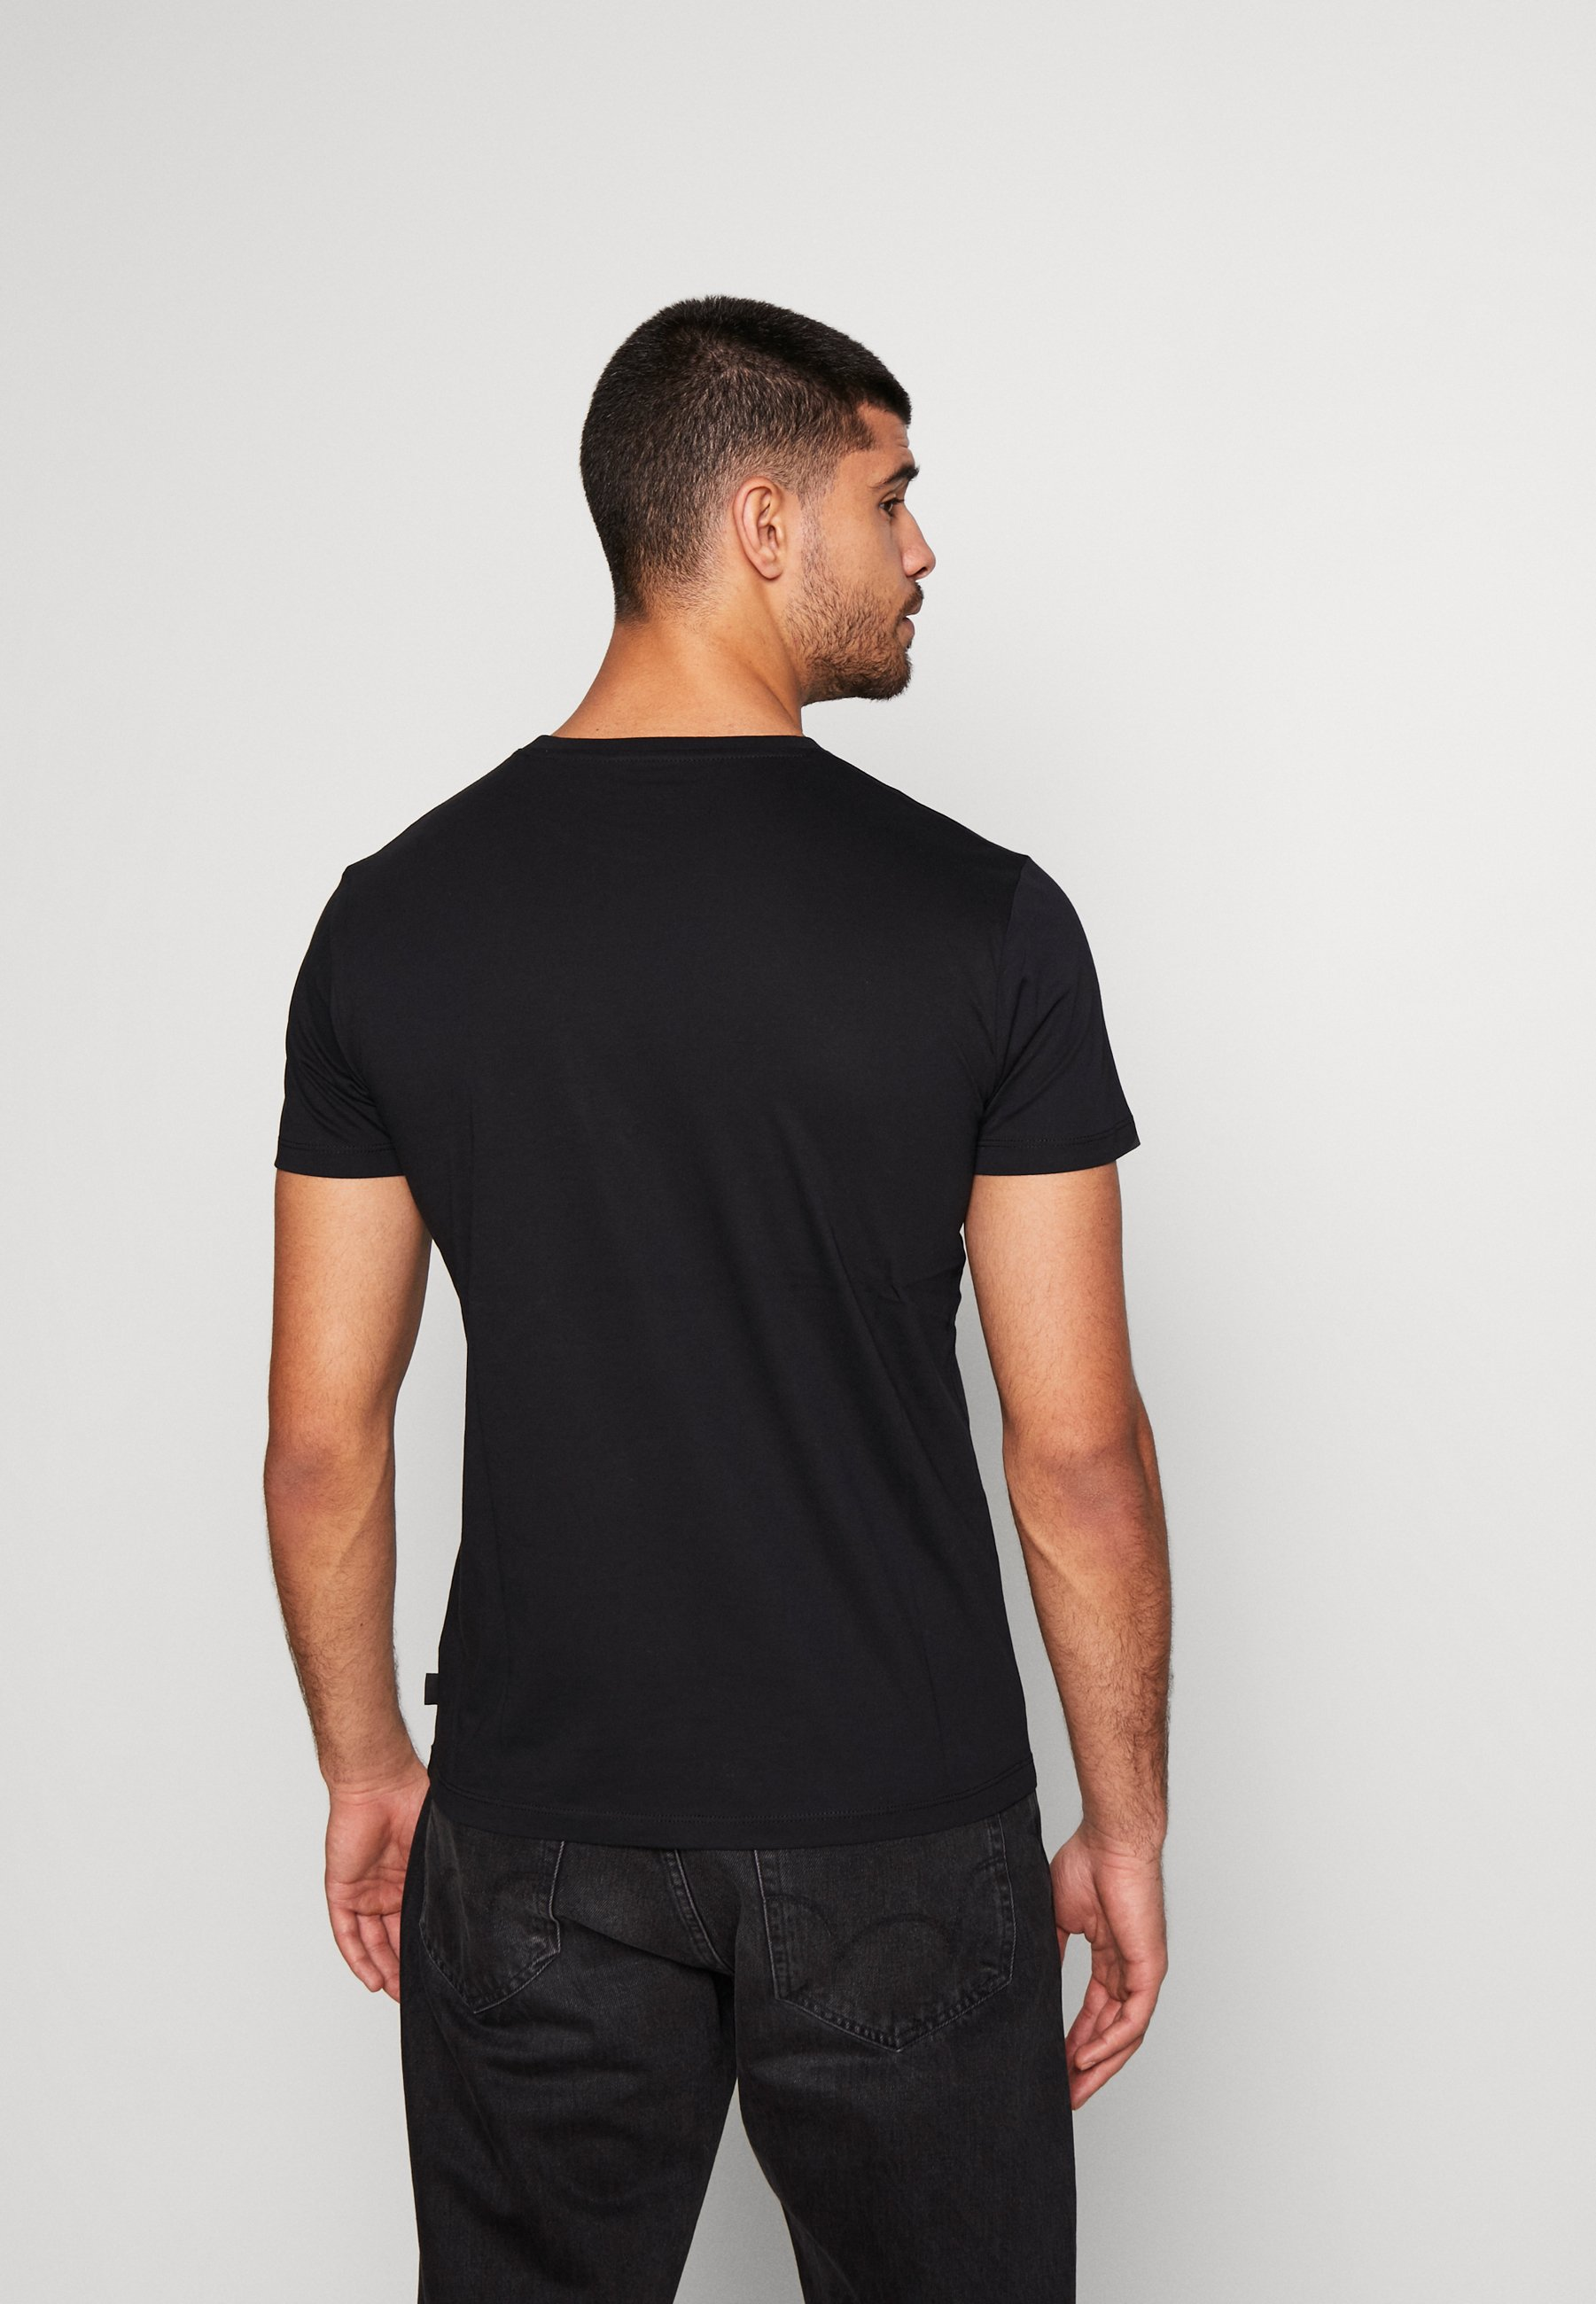 Esprit Basic T-shirt - black u11h4